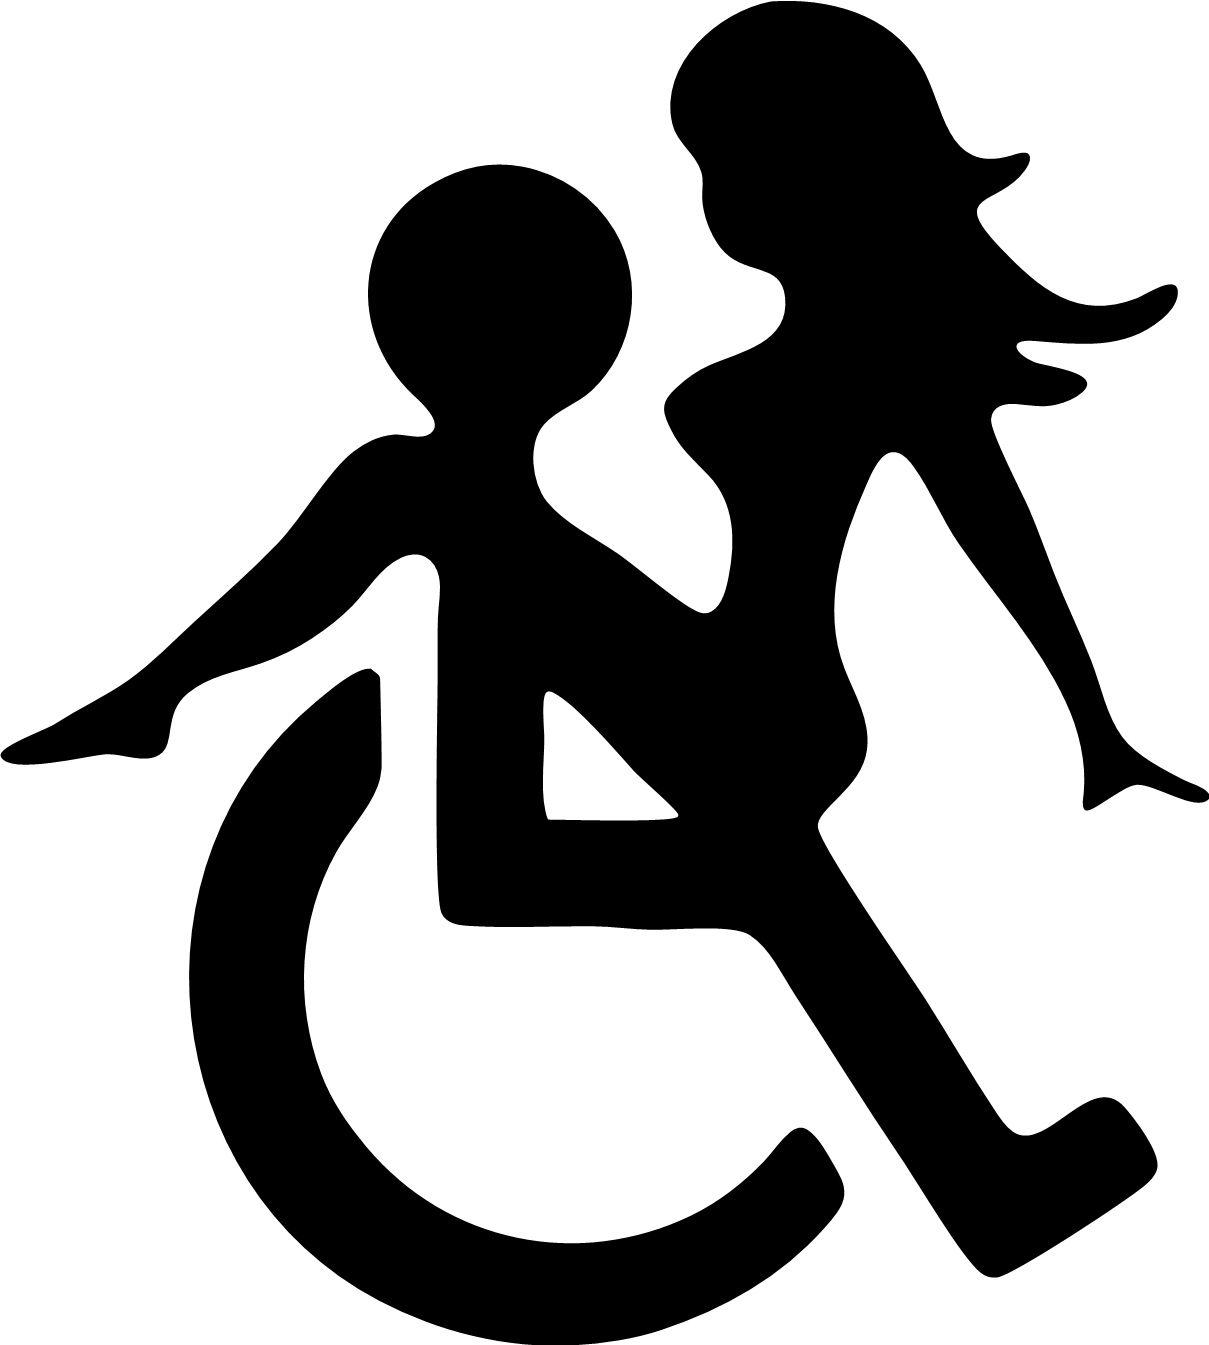 Wholesale Car Stickers Wheelchair Sex Funny Vinyl Decals - Vinyl decals for cars wholesale